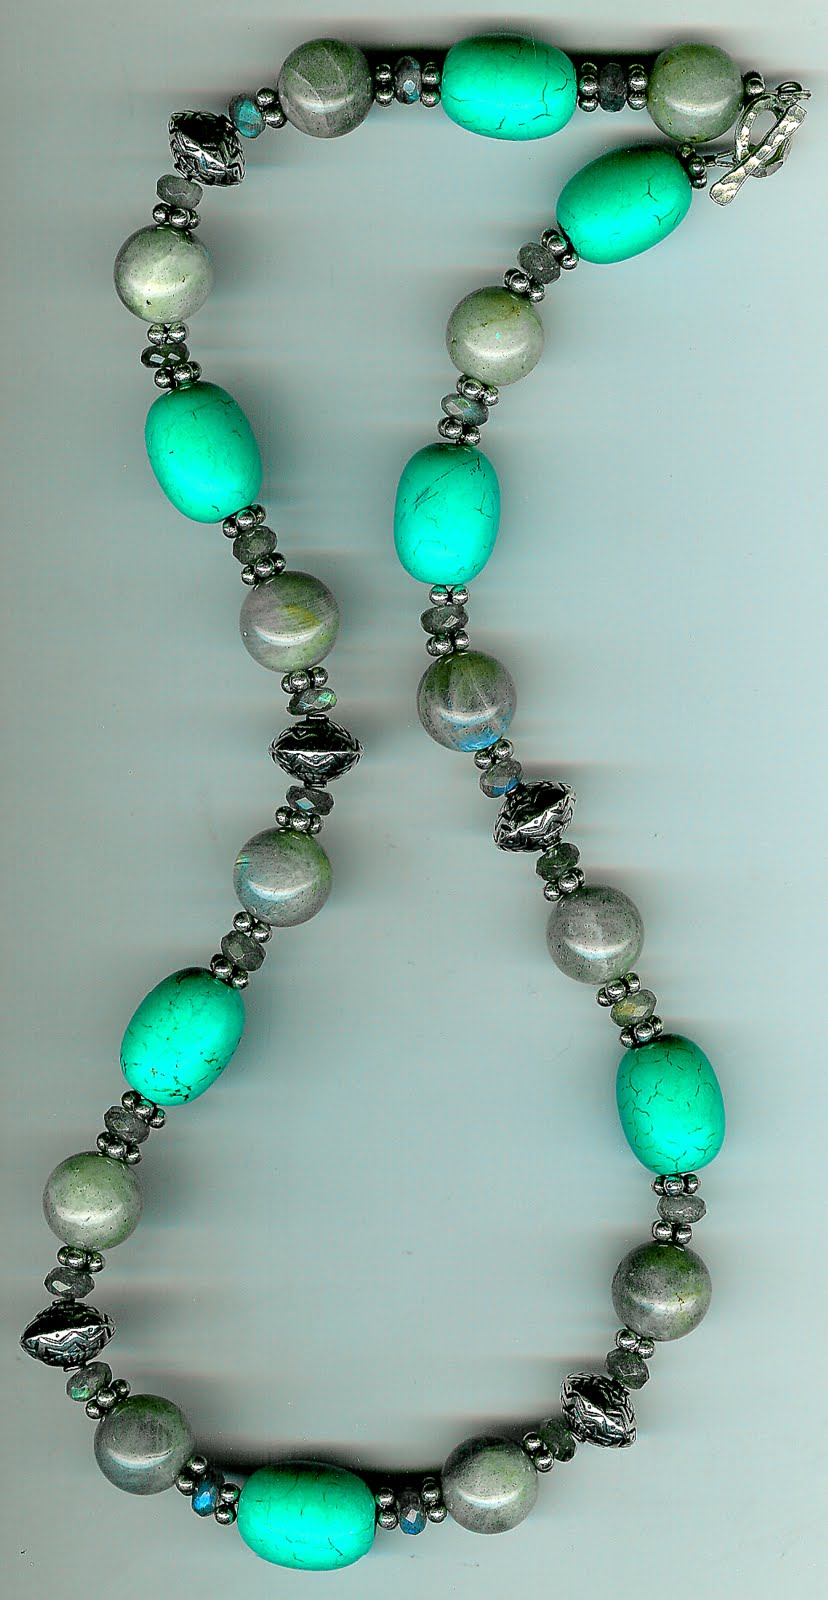 132. Labradorite, Turquoise with Bali Sterling Silver